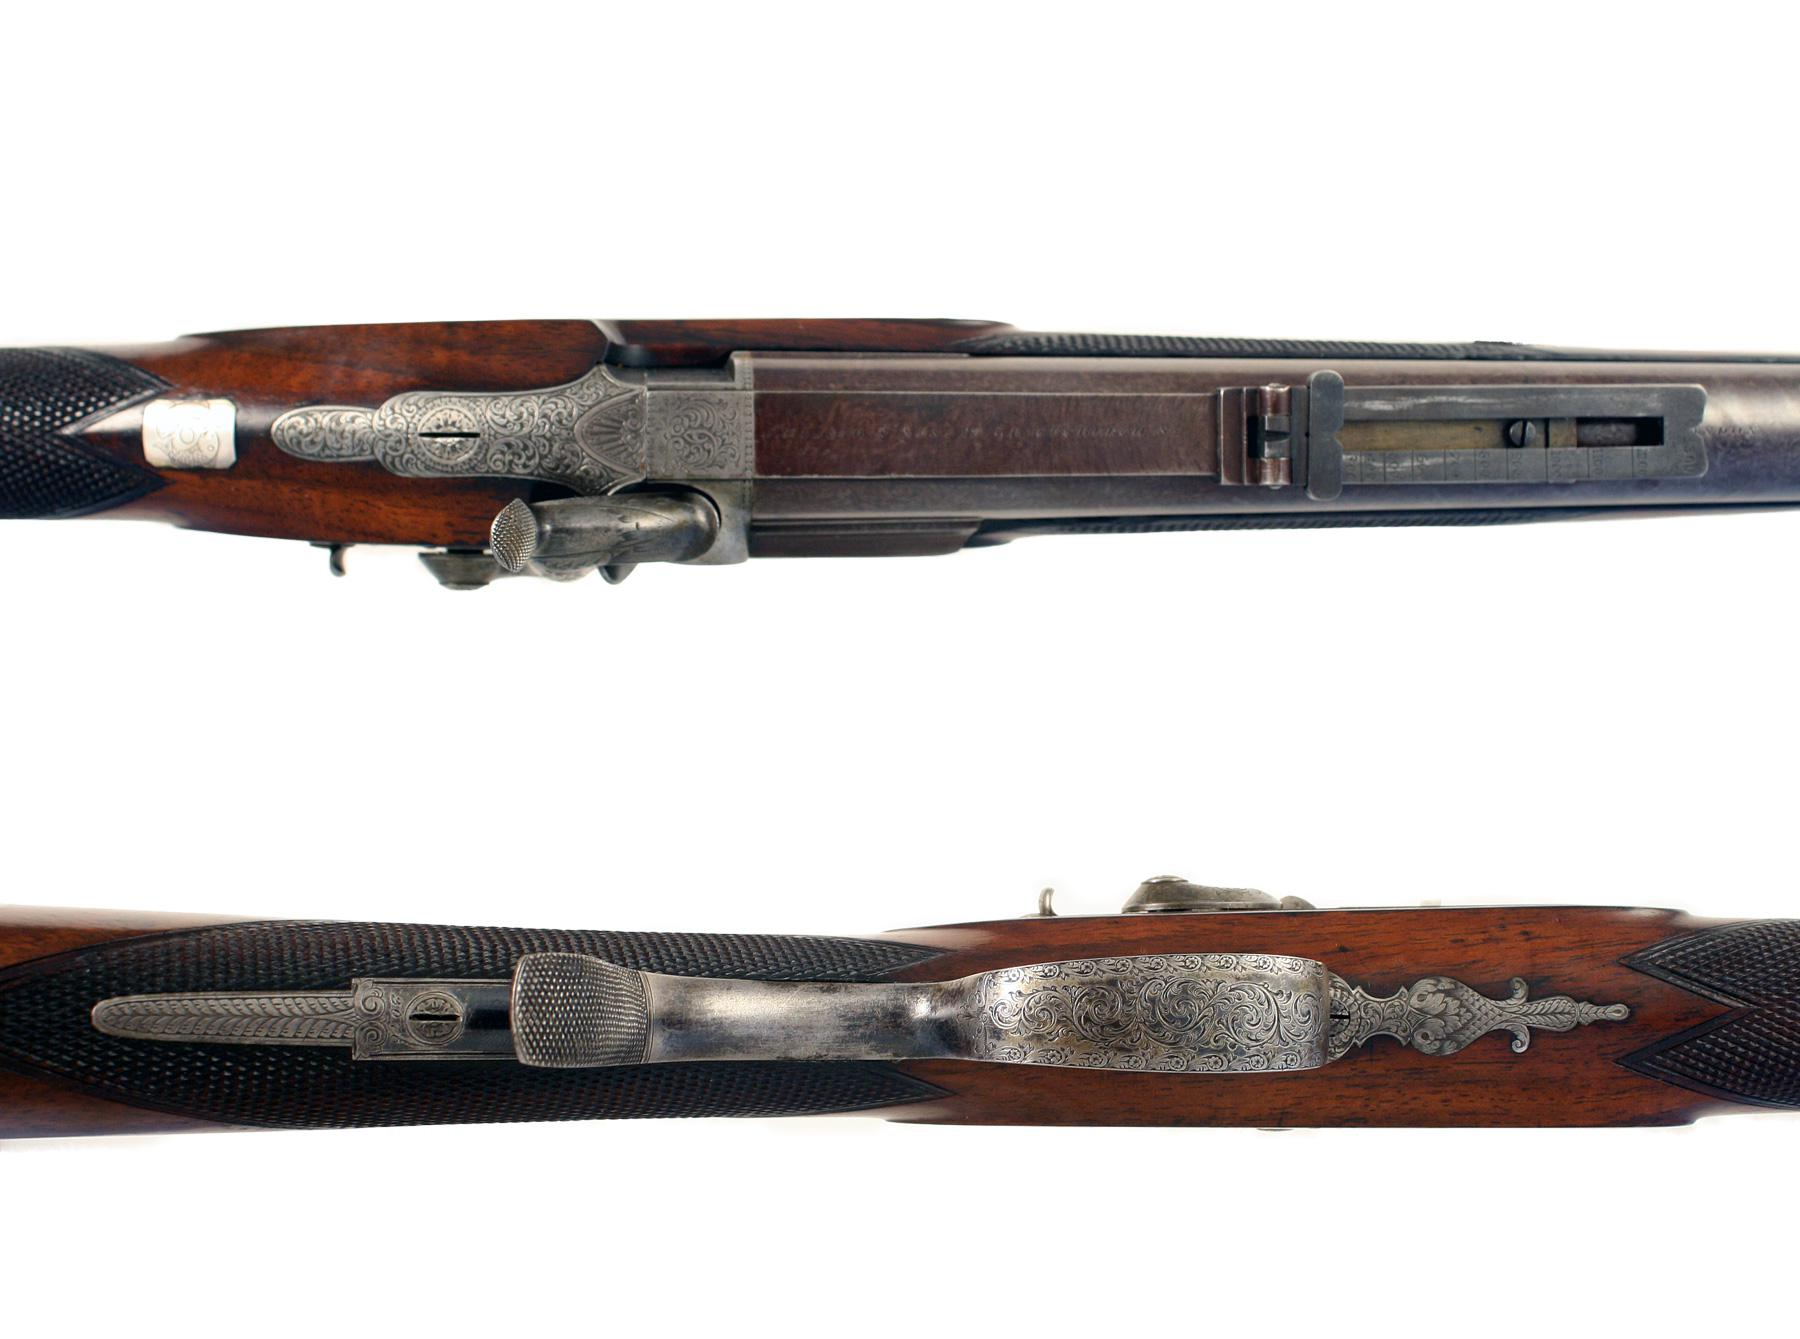 .577 Percussion Sporting Rifle by J. Blanch